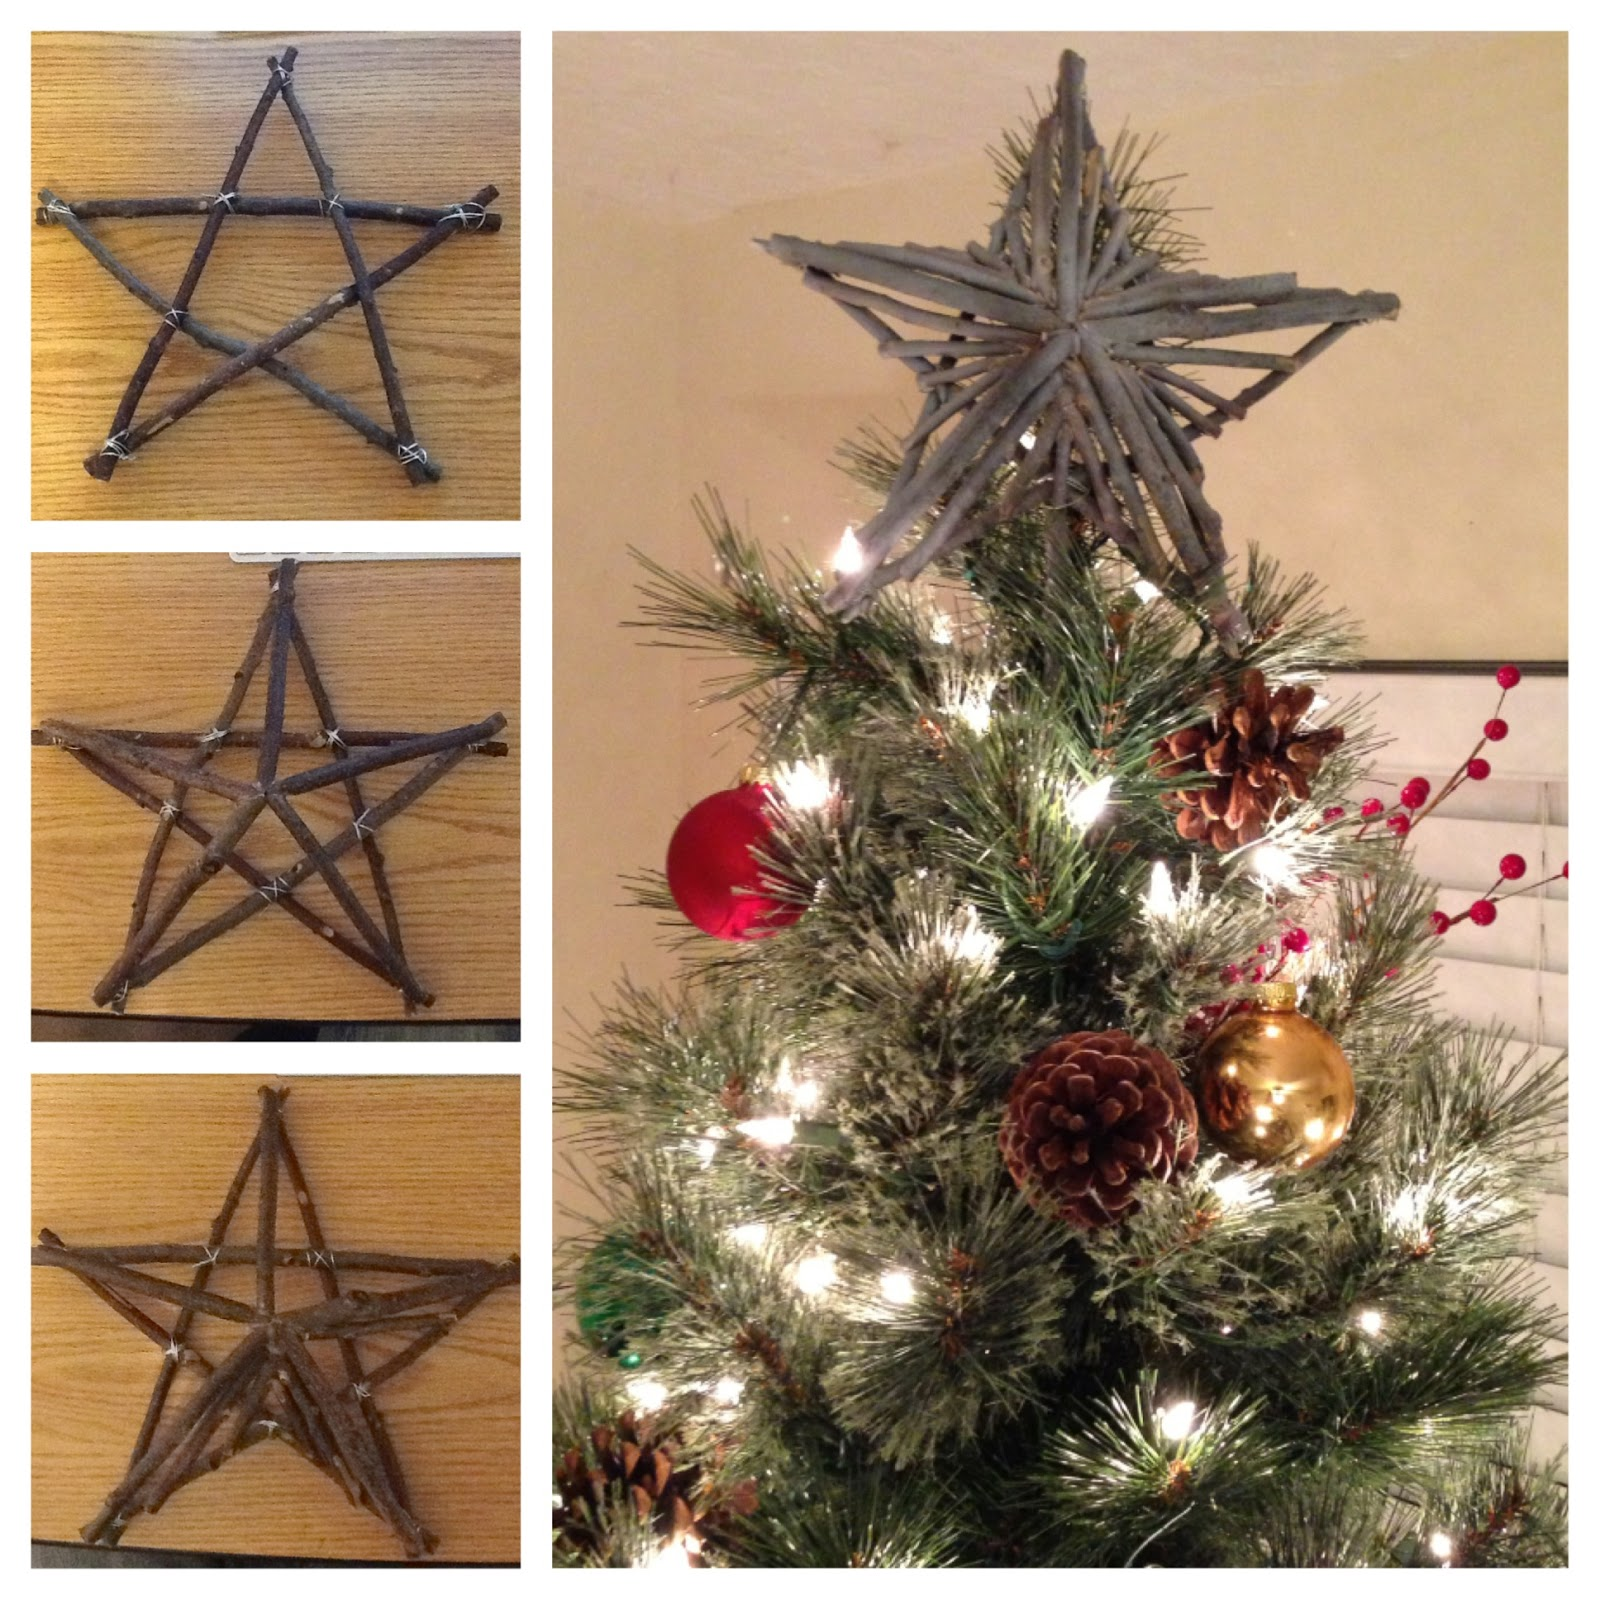 Star For A Christmas Tree: M@'s Projects: Rustic Star Tree Topper